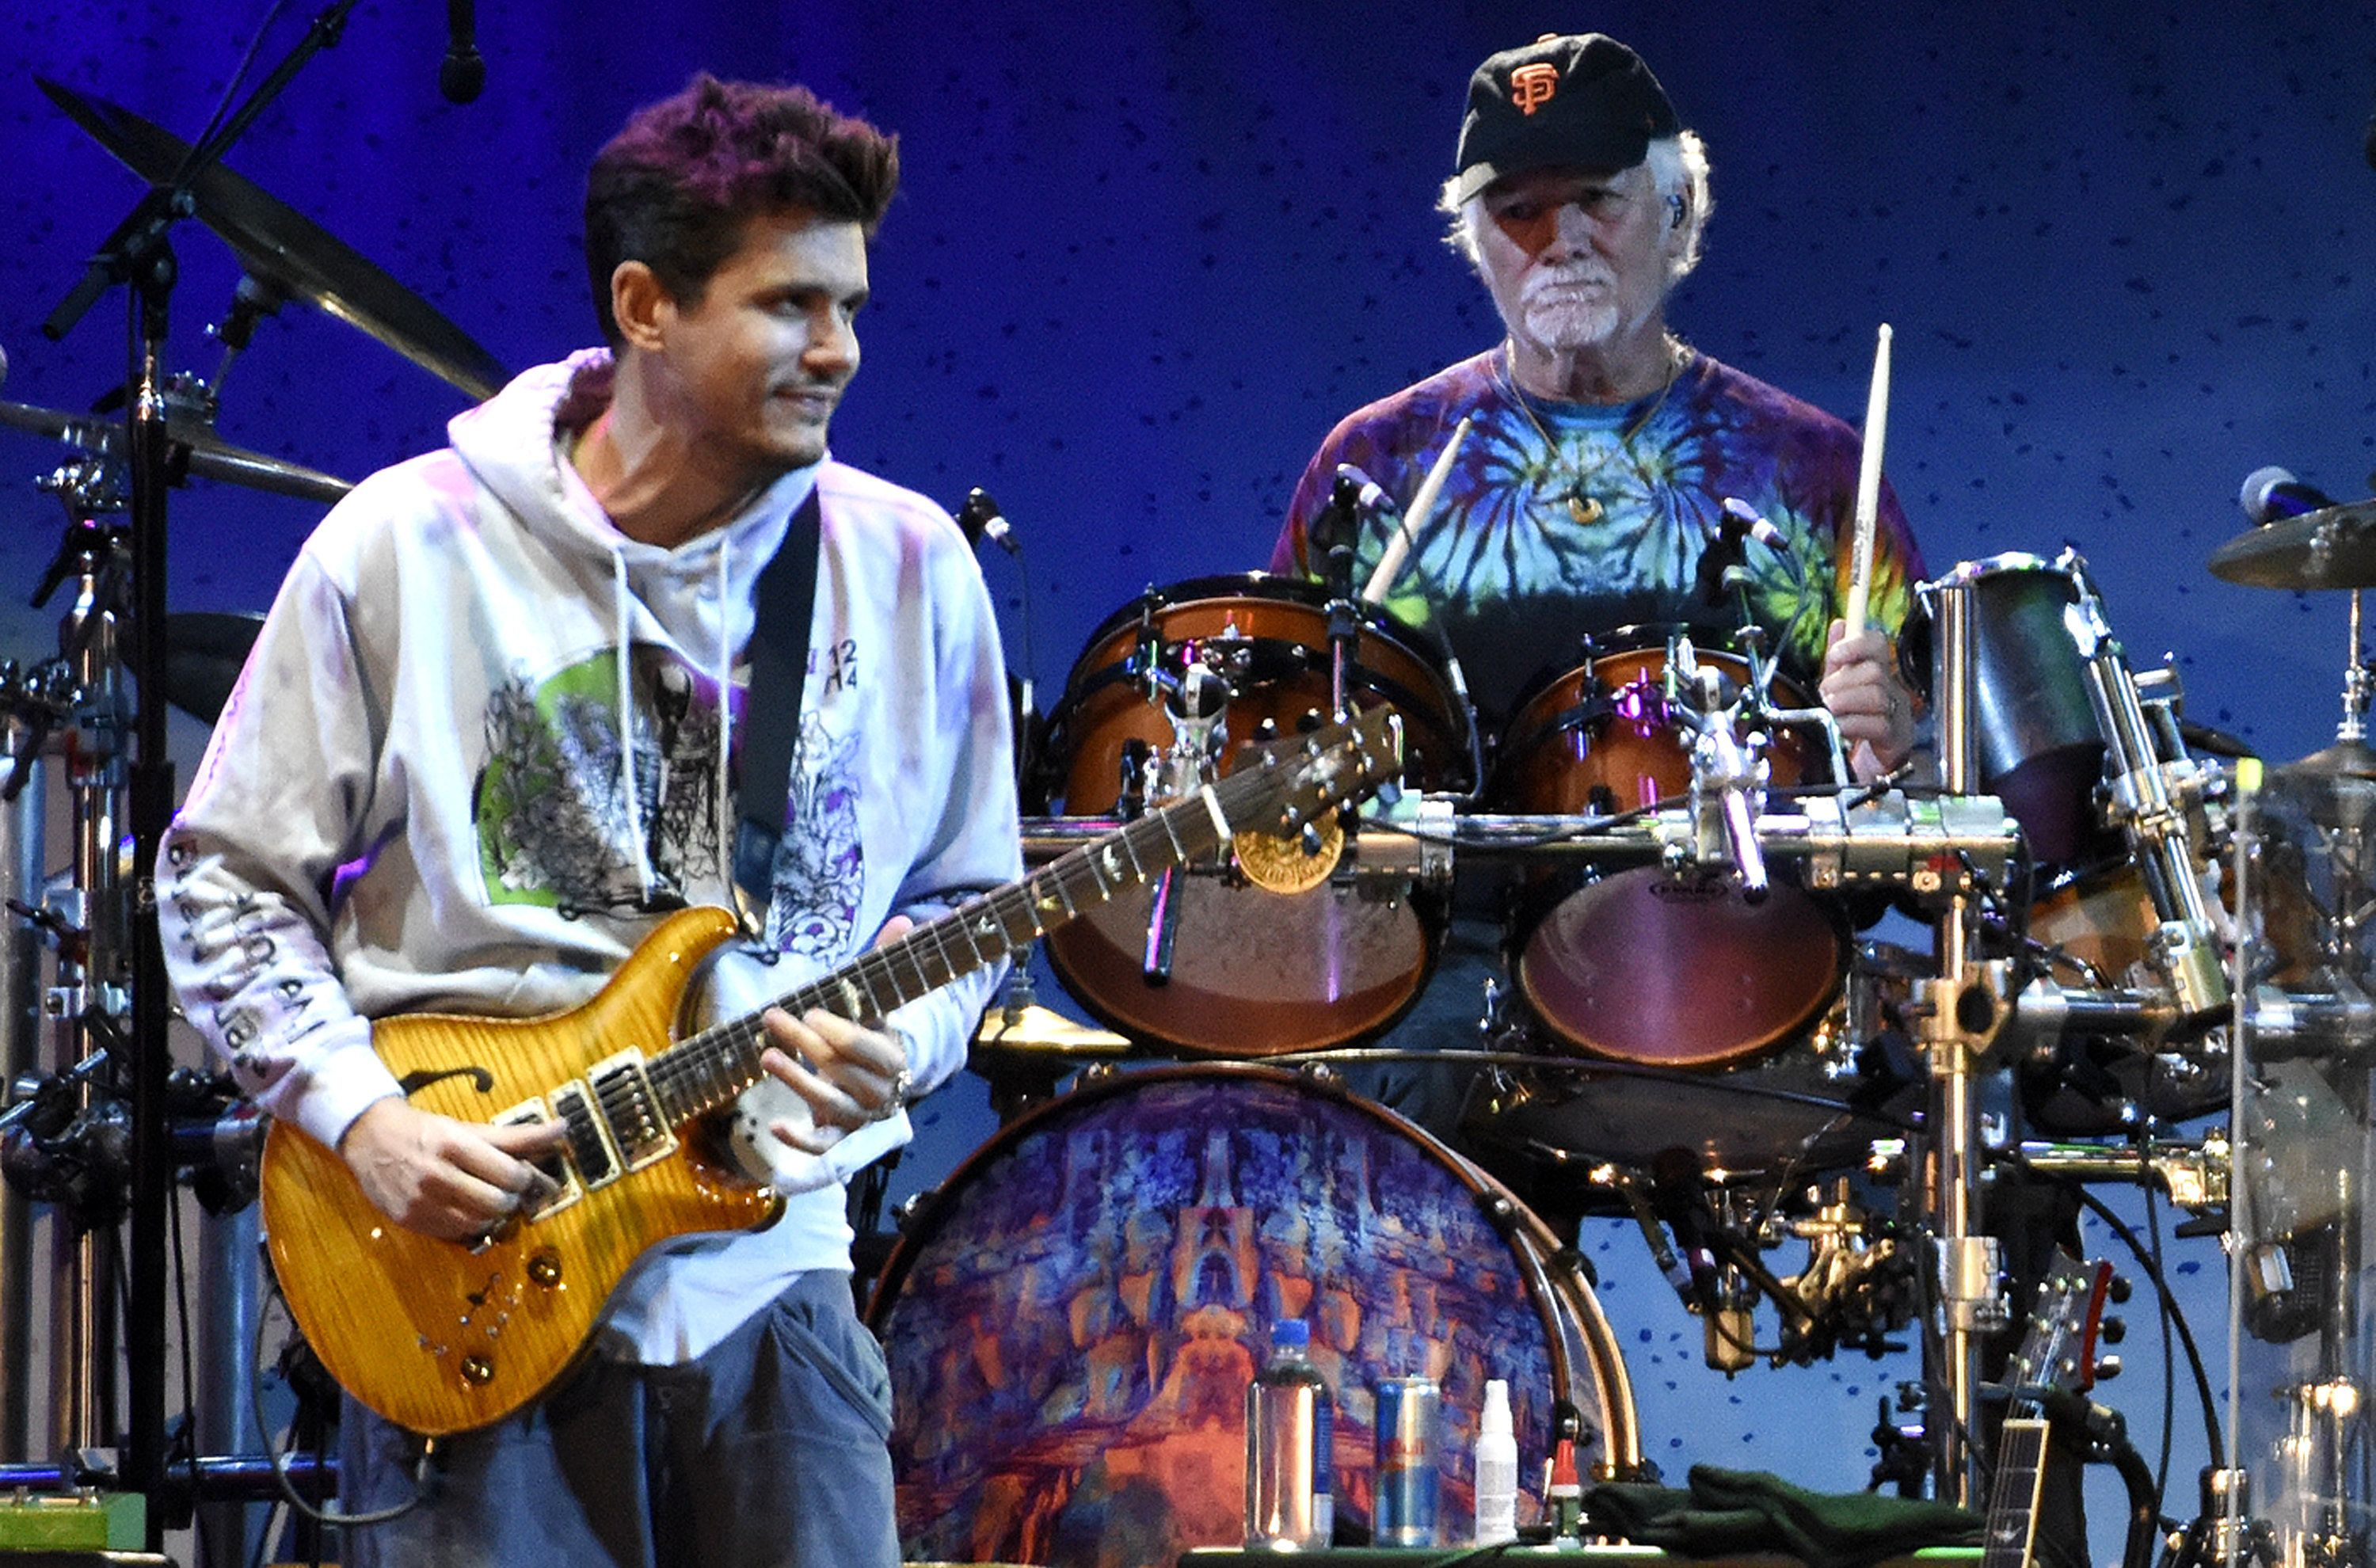 SAN FRANCISCO, CA - NOVEMBER 09:  John Mayer (L) and Bill Kreutzmann of Dead & Company perform during Band Together Bay Area Fire Benefit Concert at AT&T Park on November 9, 2017 in San Francisco, California.  (Photo by Tim Mosenfelder/Getty Images)